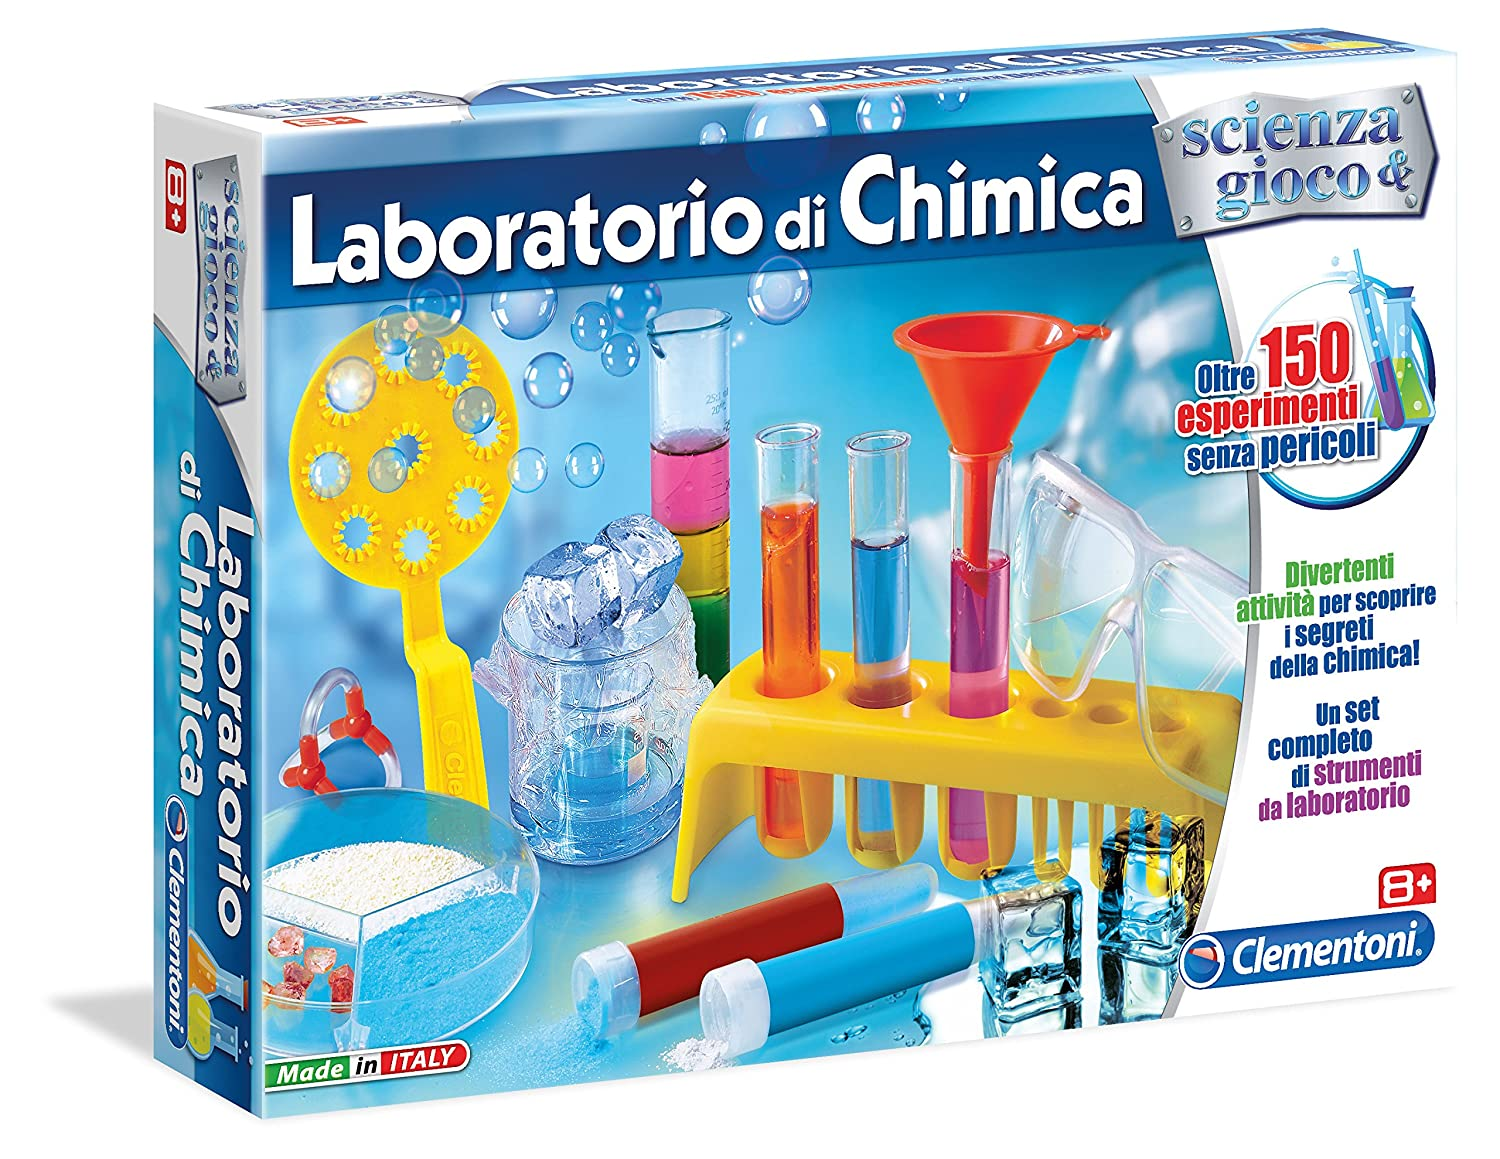 Connu Clementoni 13908 - Laboratorio di Chimica Gioco Educativo e  IS02